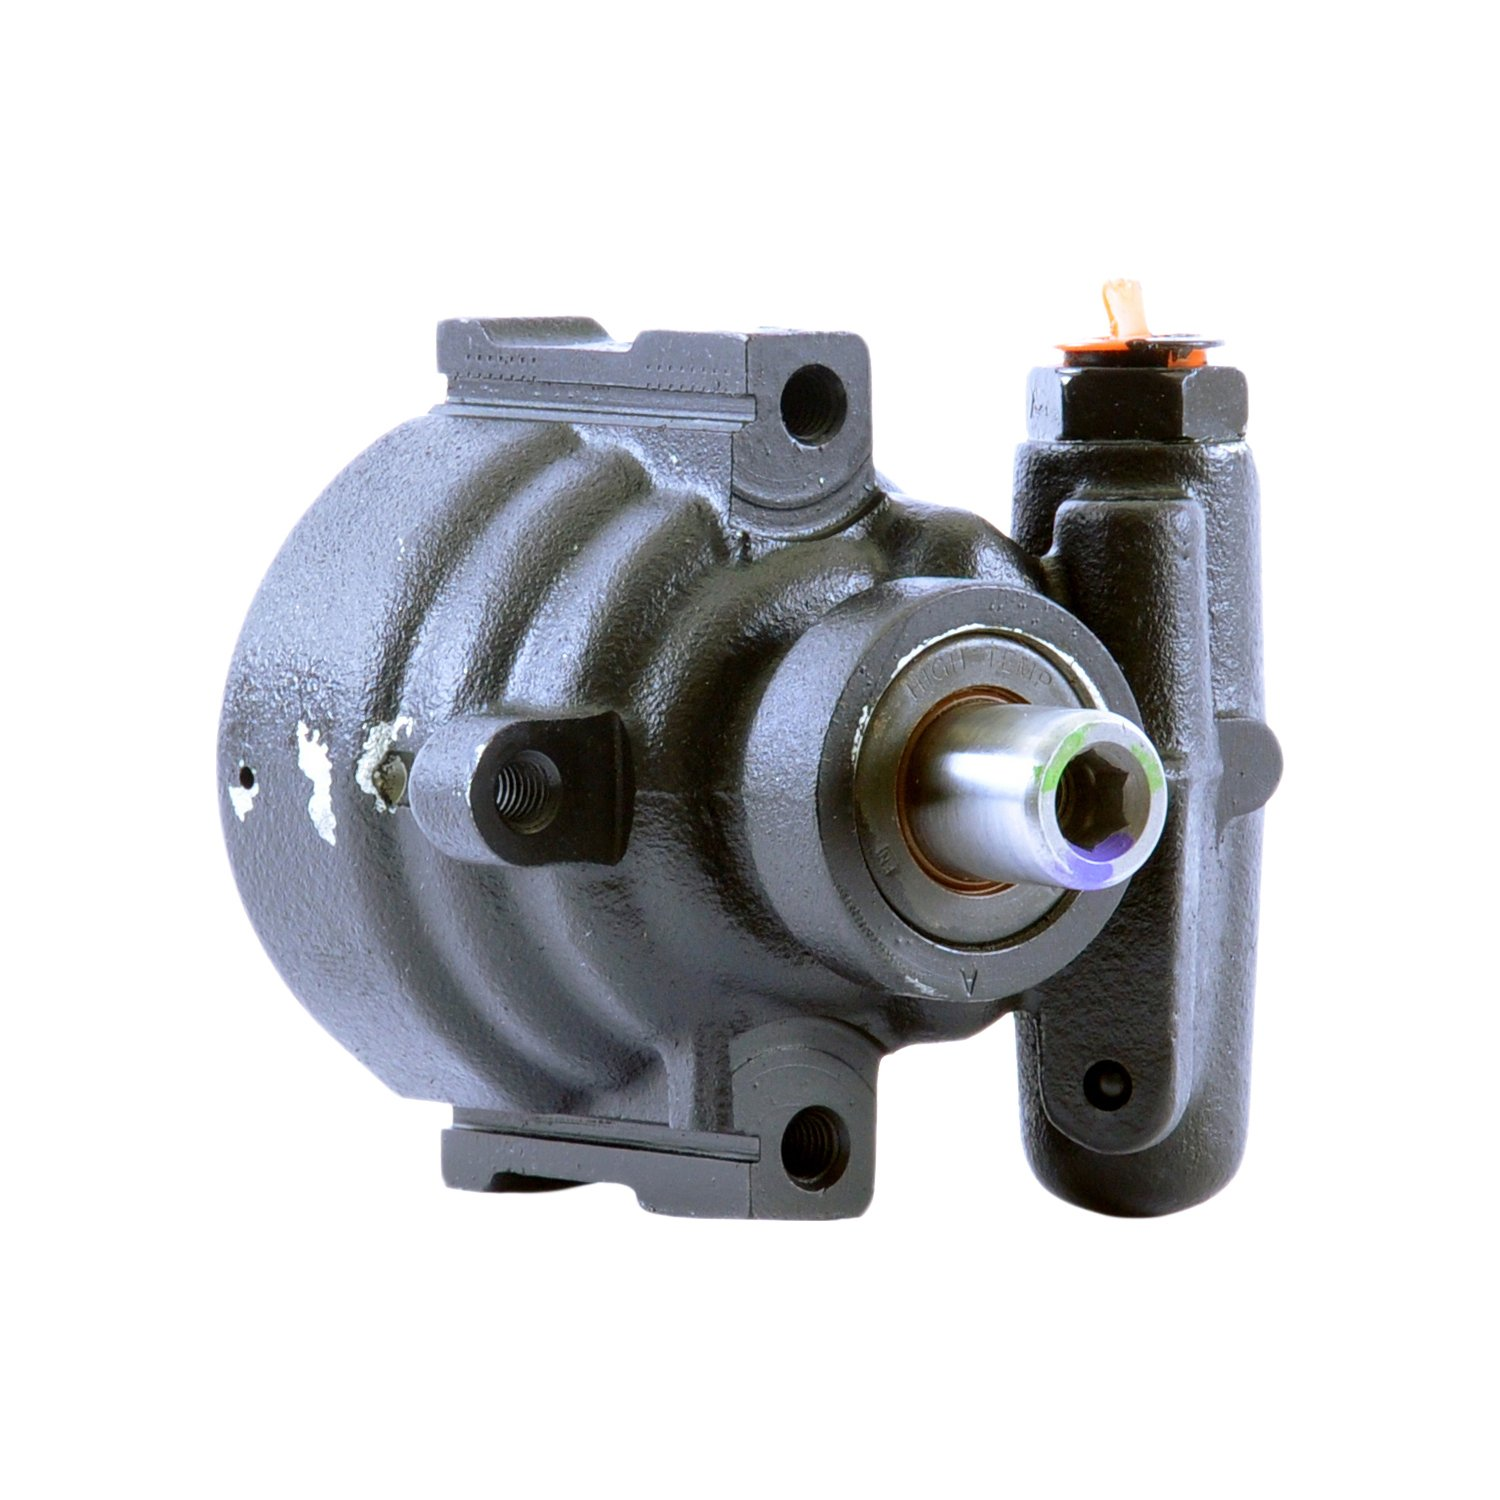 ACDelco 36P0259 Professional Power Steering Pump, Remanufactured